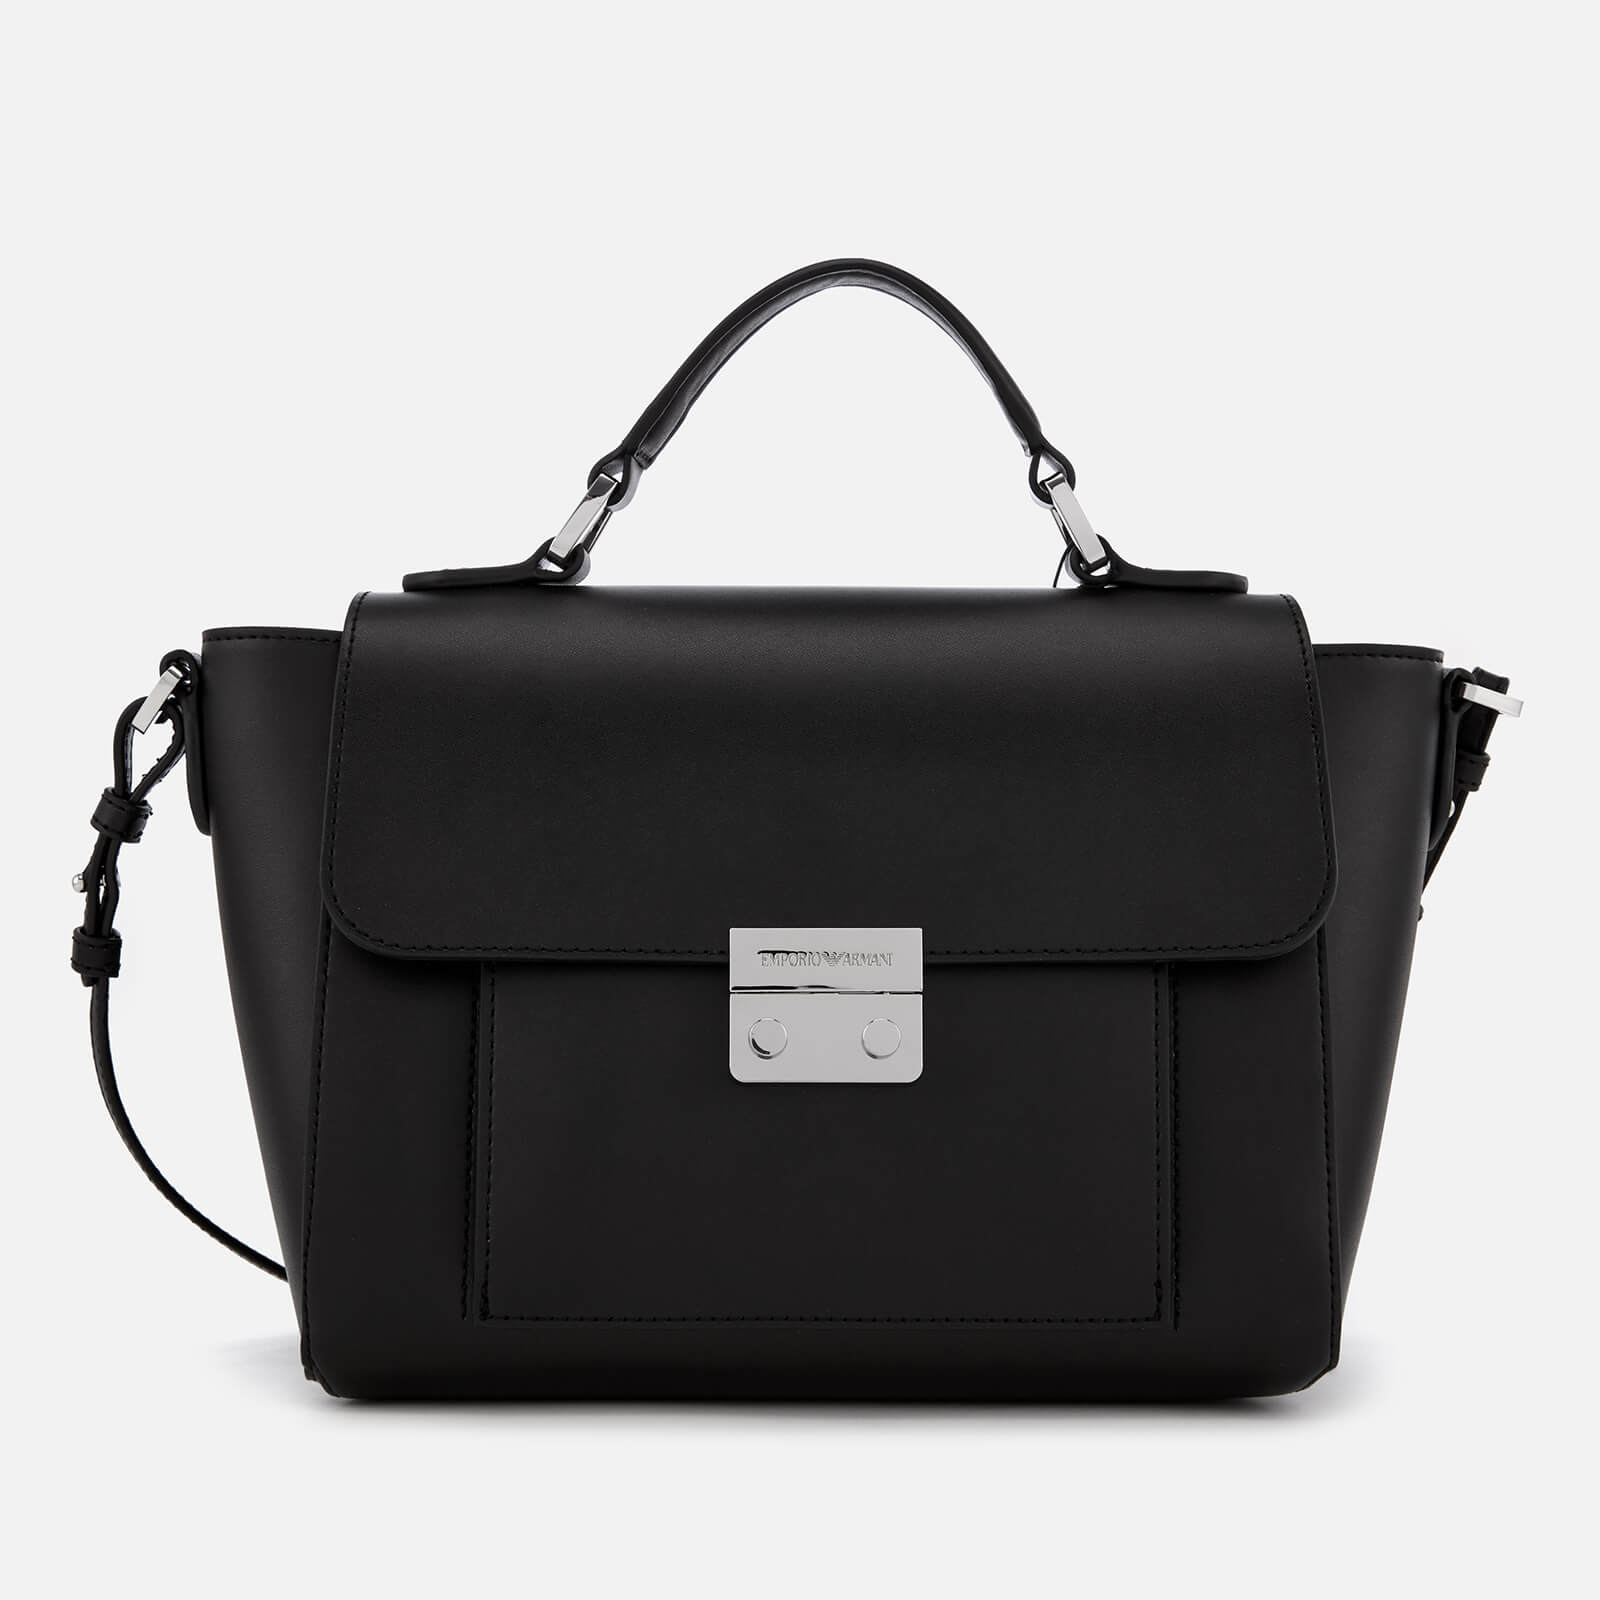 Emporio Armani Women s Top Handle Small Tote Bag - Black - Free UK Delivery  over £50 c3d6d36e89a0d